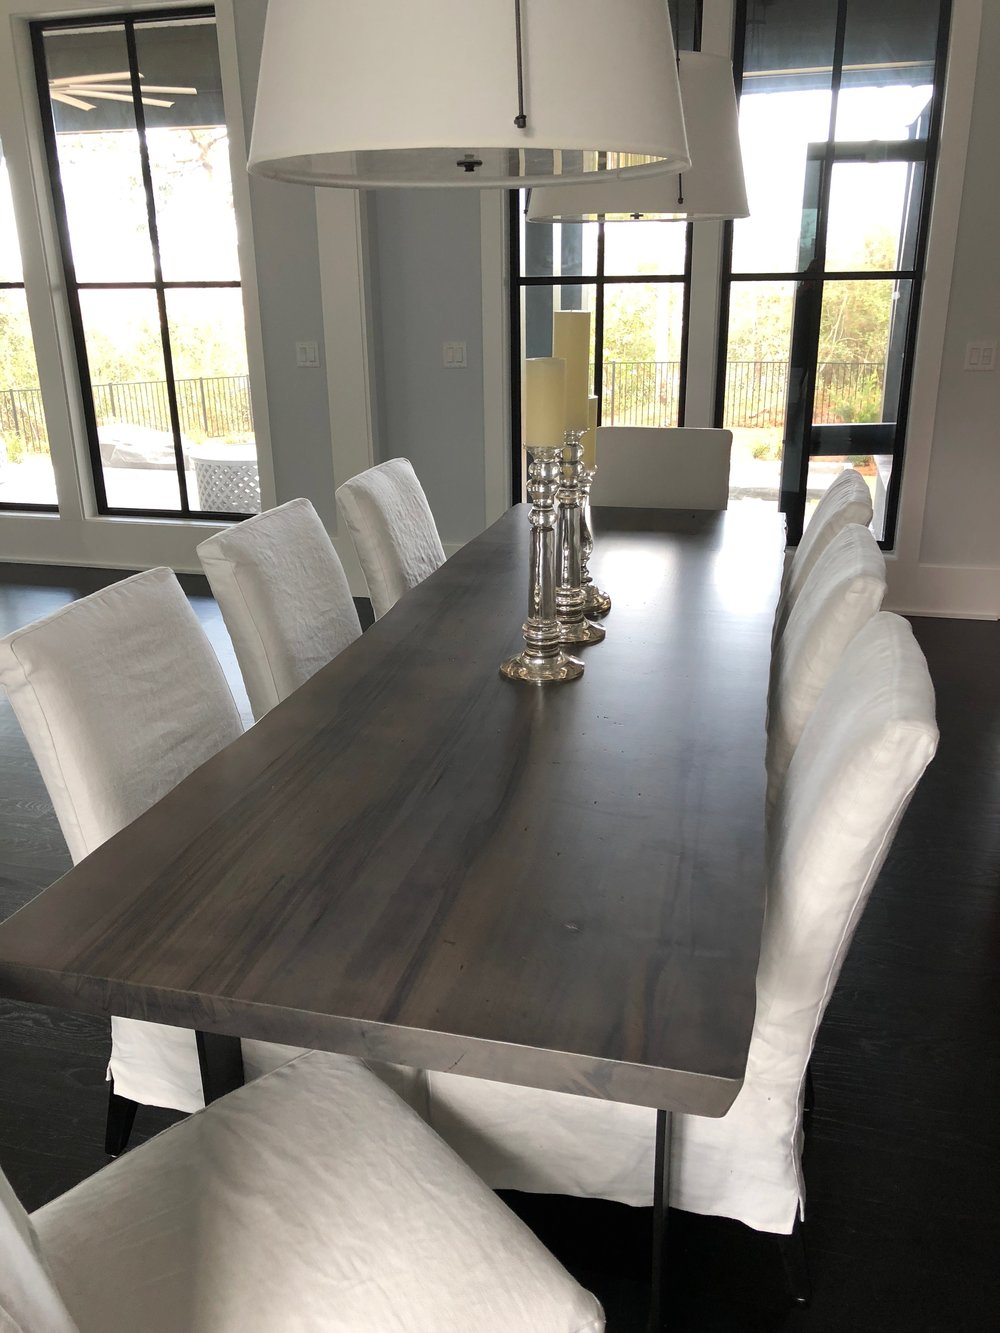 josh-utsey-design-live-edge-walnut-acrylic-custom-furniture-charlotte-nc-metal-oxidized-maple.jpg